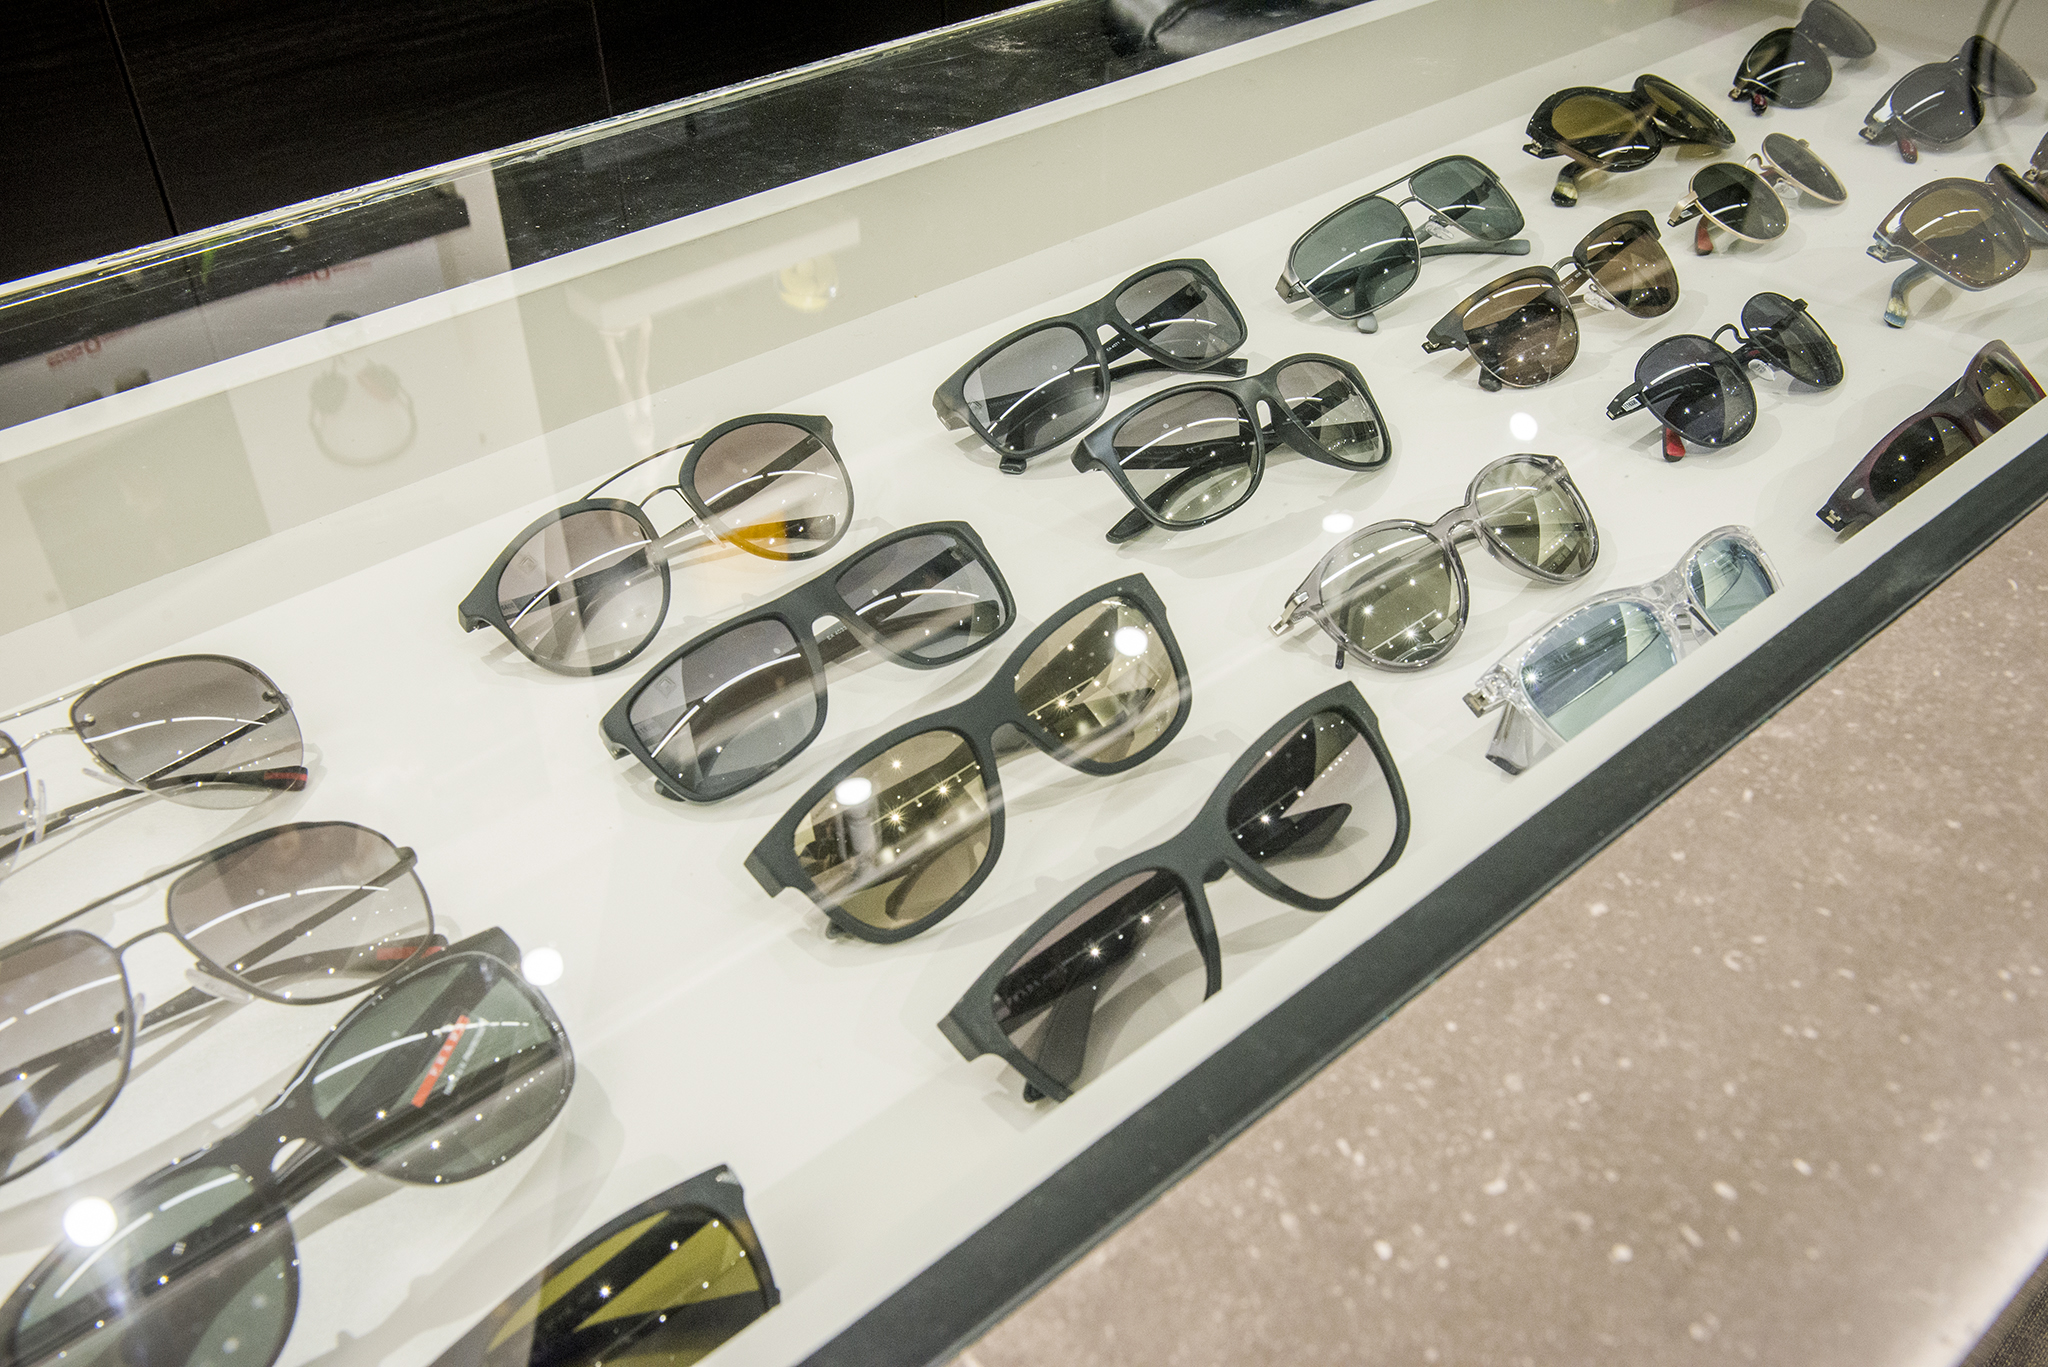 (Sunglass display case. photo: BUILD IT By Design )